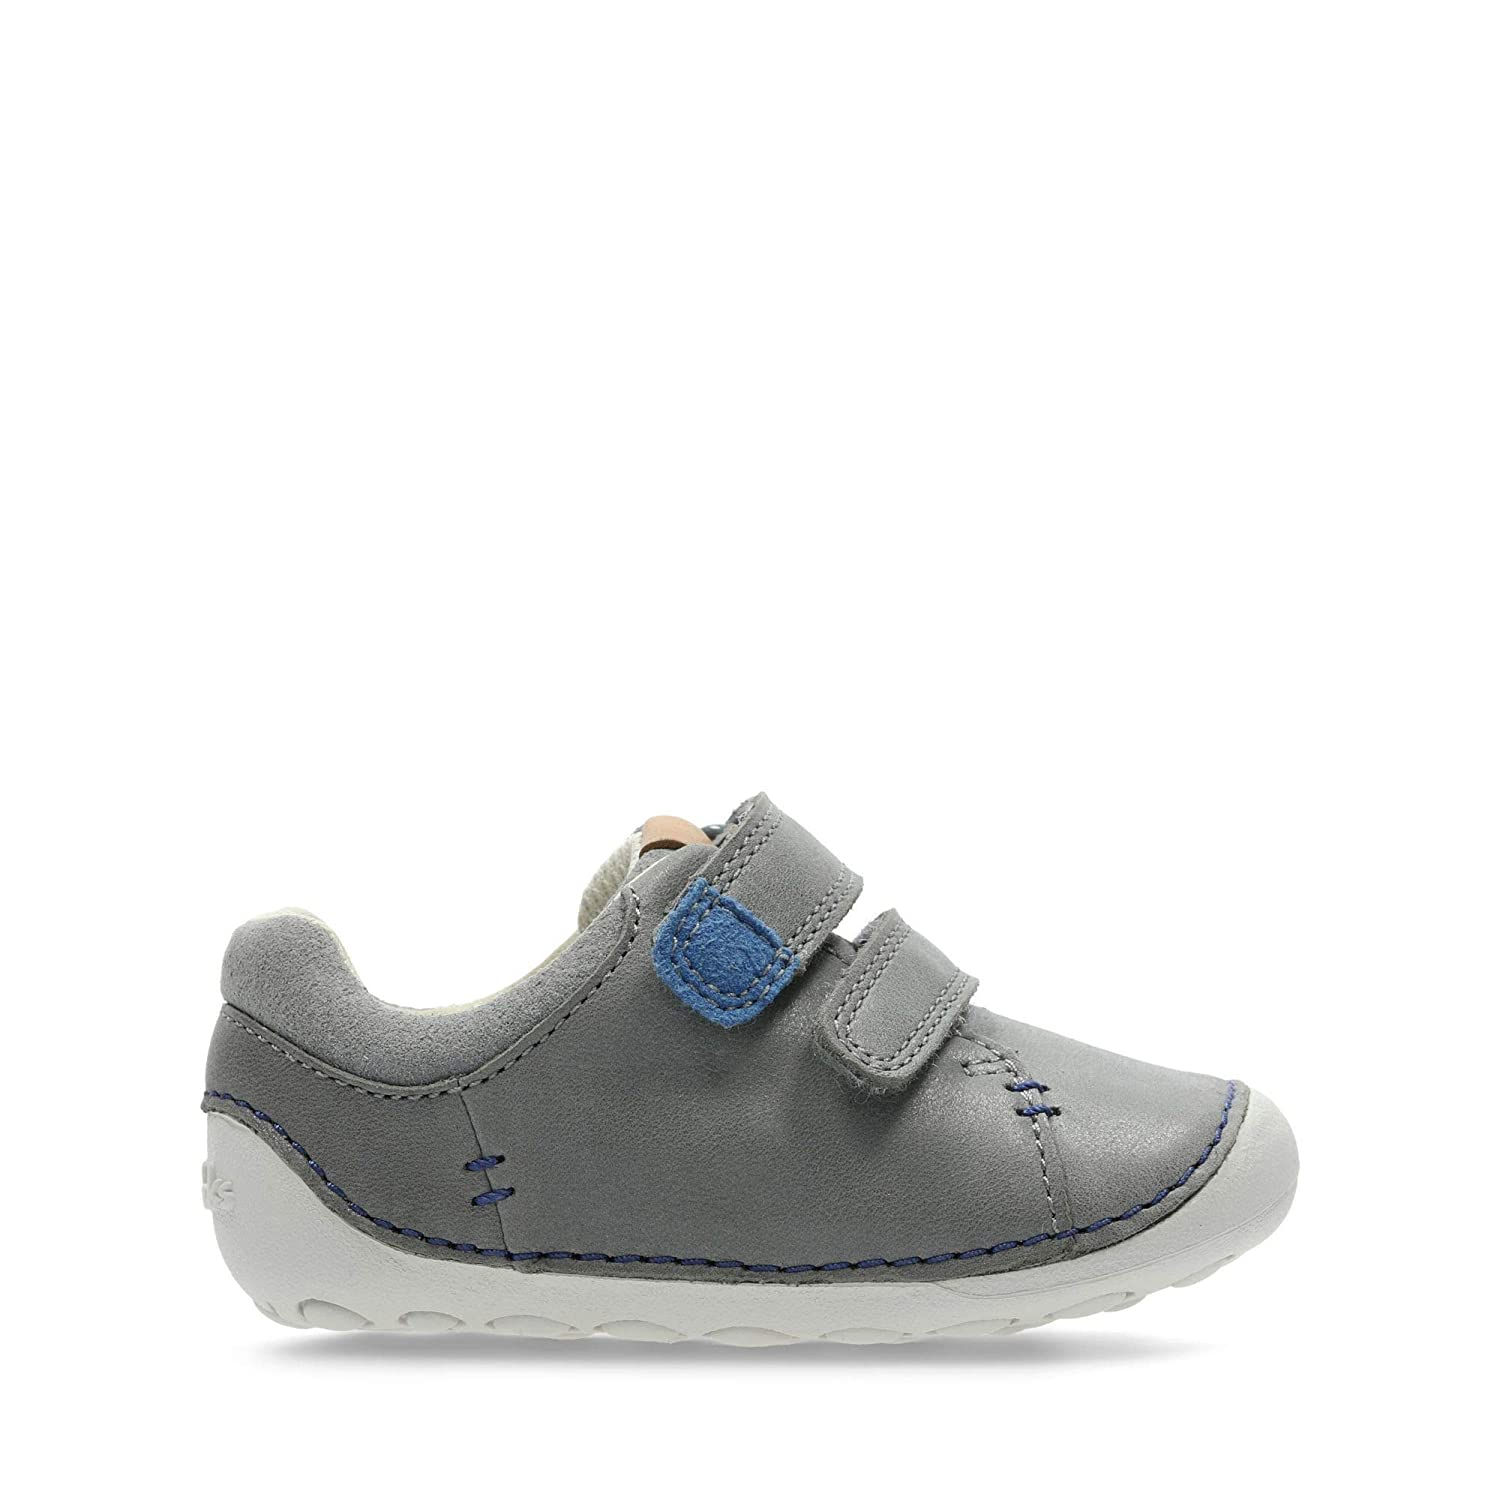 ad5e5cf3 Clarks Tiny Toby Toddler Leather Shoes in Grey: Amazon.co.uk: Shoes ...